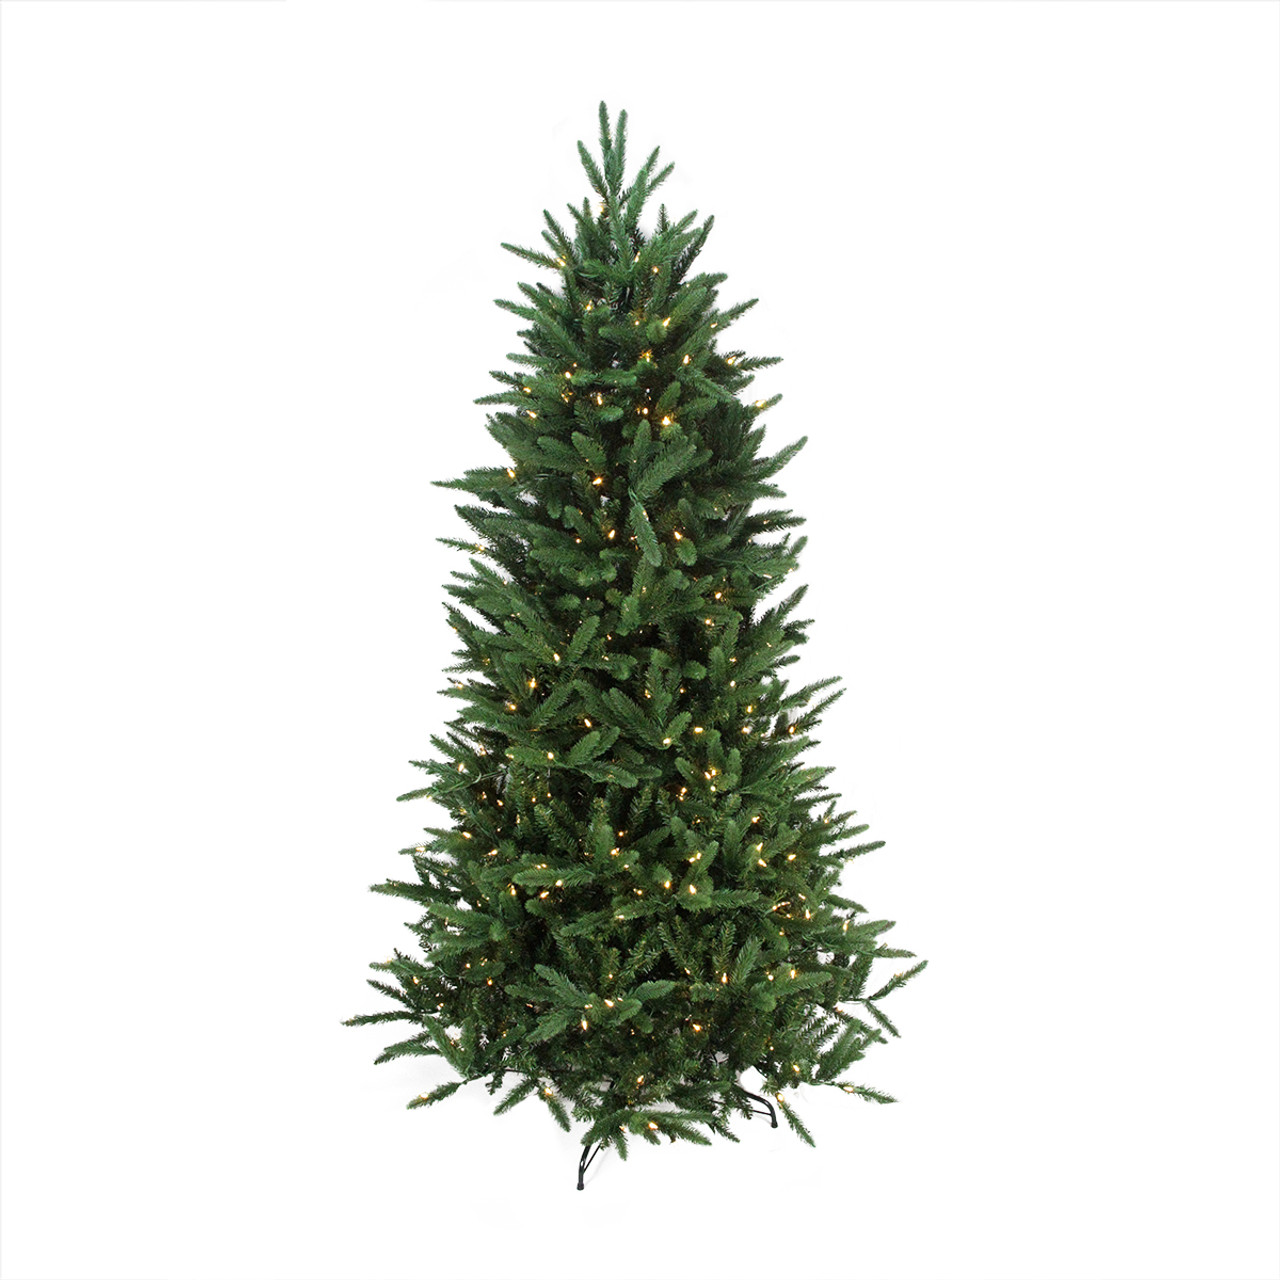 7 5 Pre Lit Mixed Pine Multi Function Remote Control Artificial Christmas Tree Multi Color Lights Christmas Central